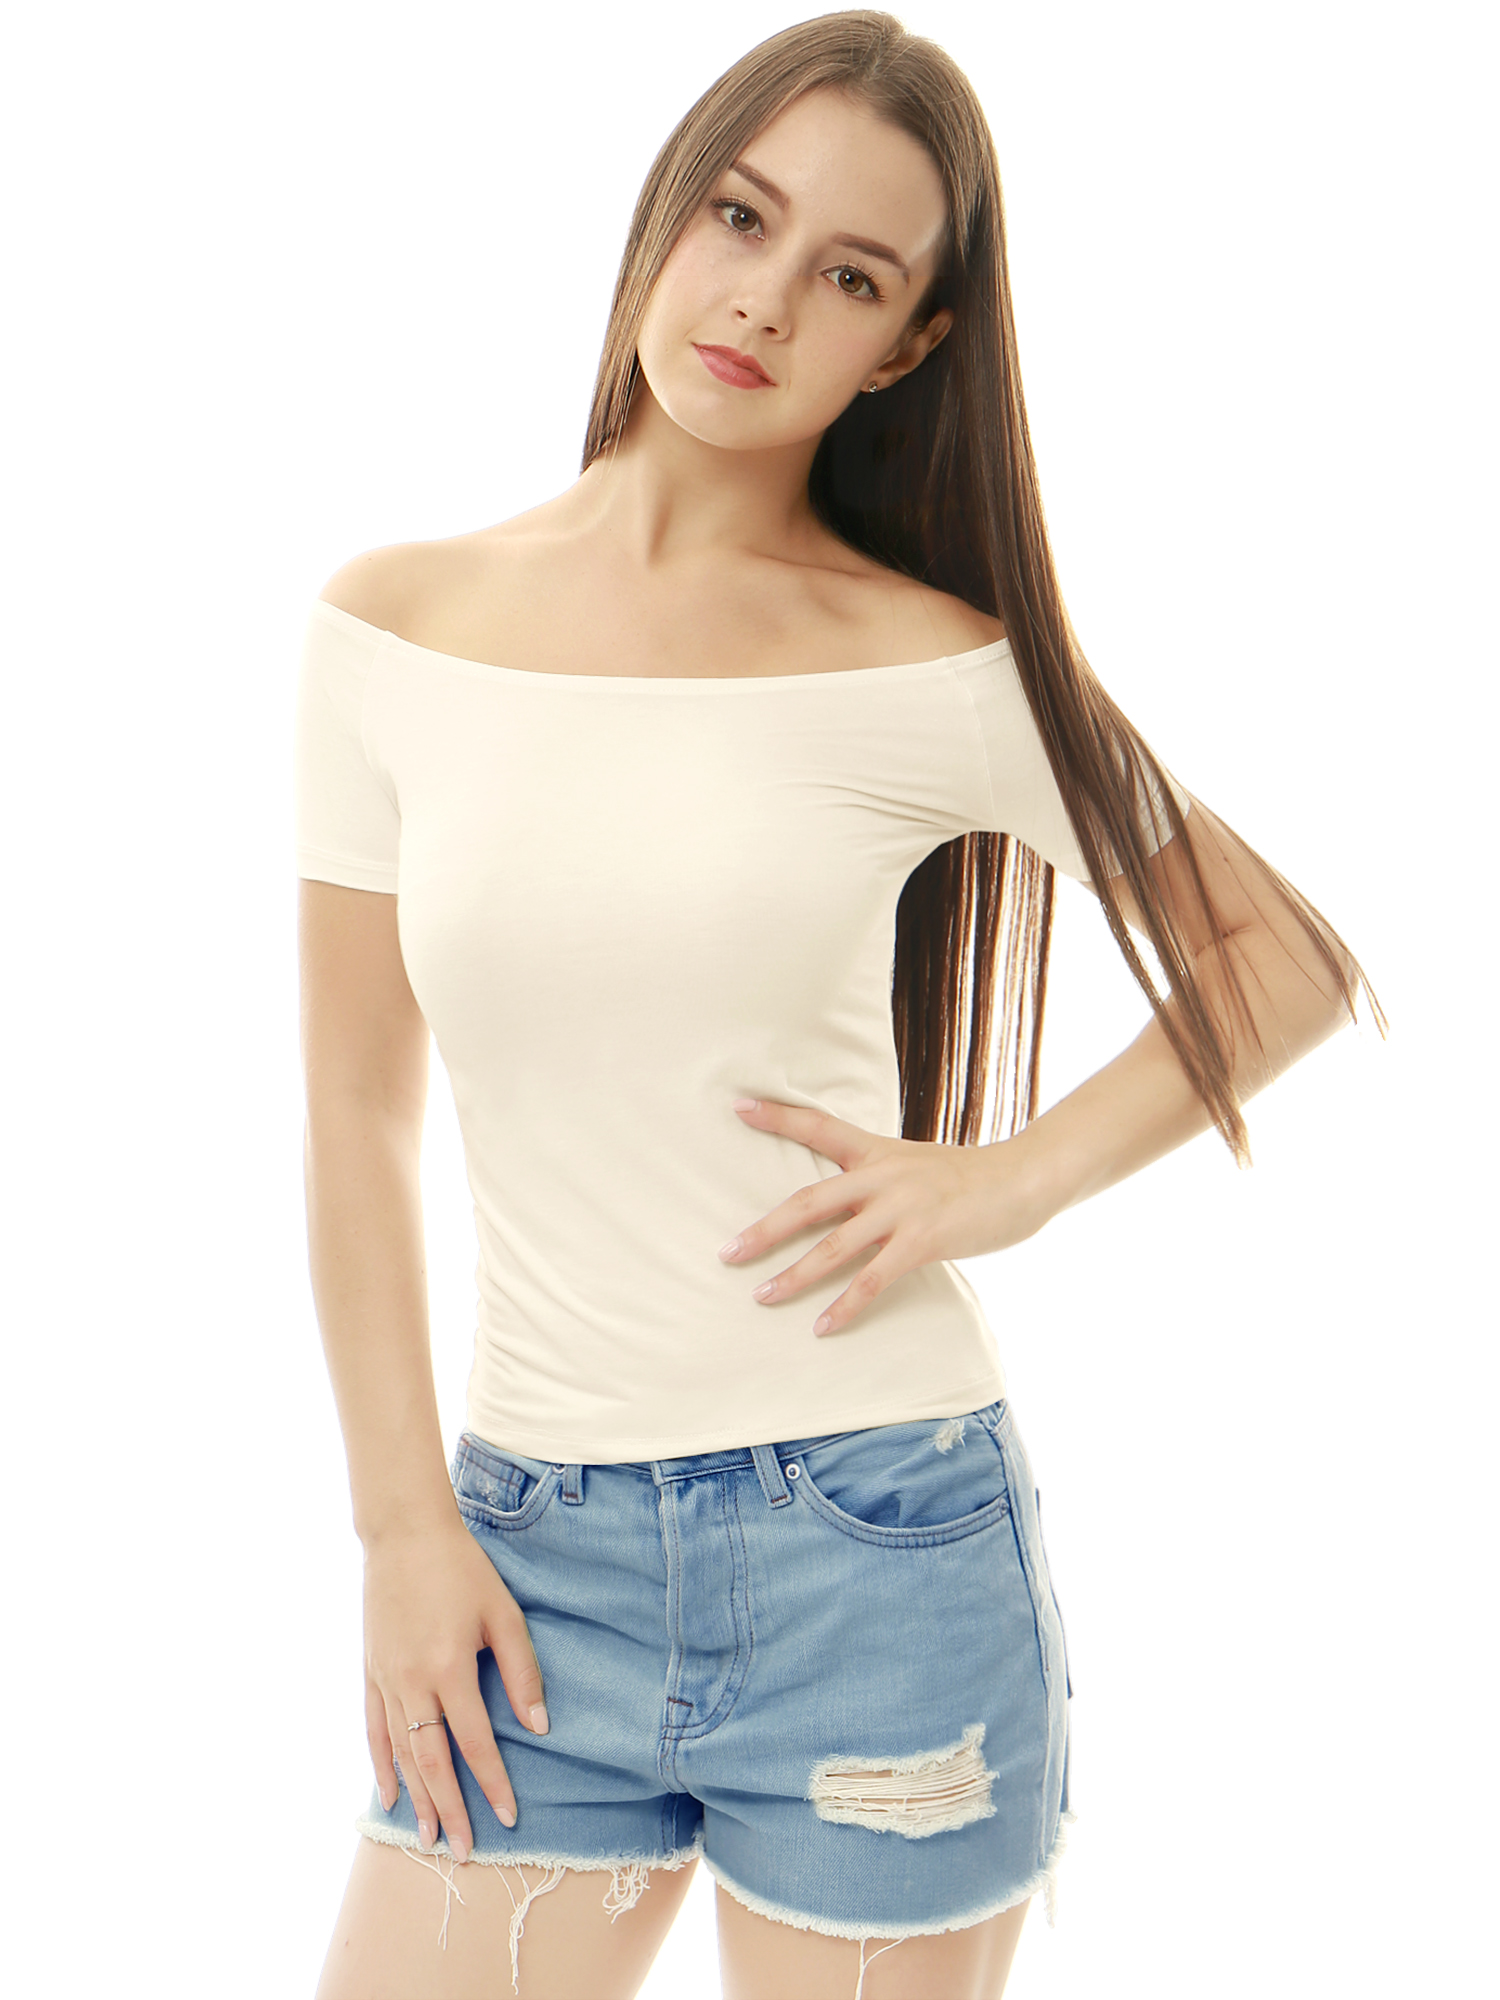 Women Short Sleeves Slim Fit Off the Shoulder Top White S